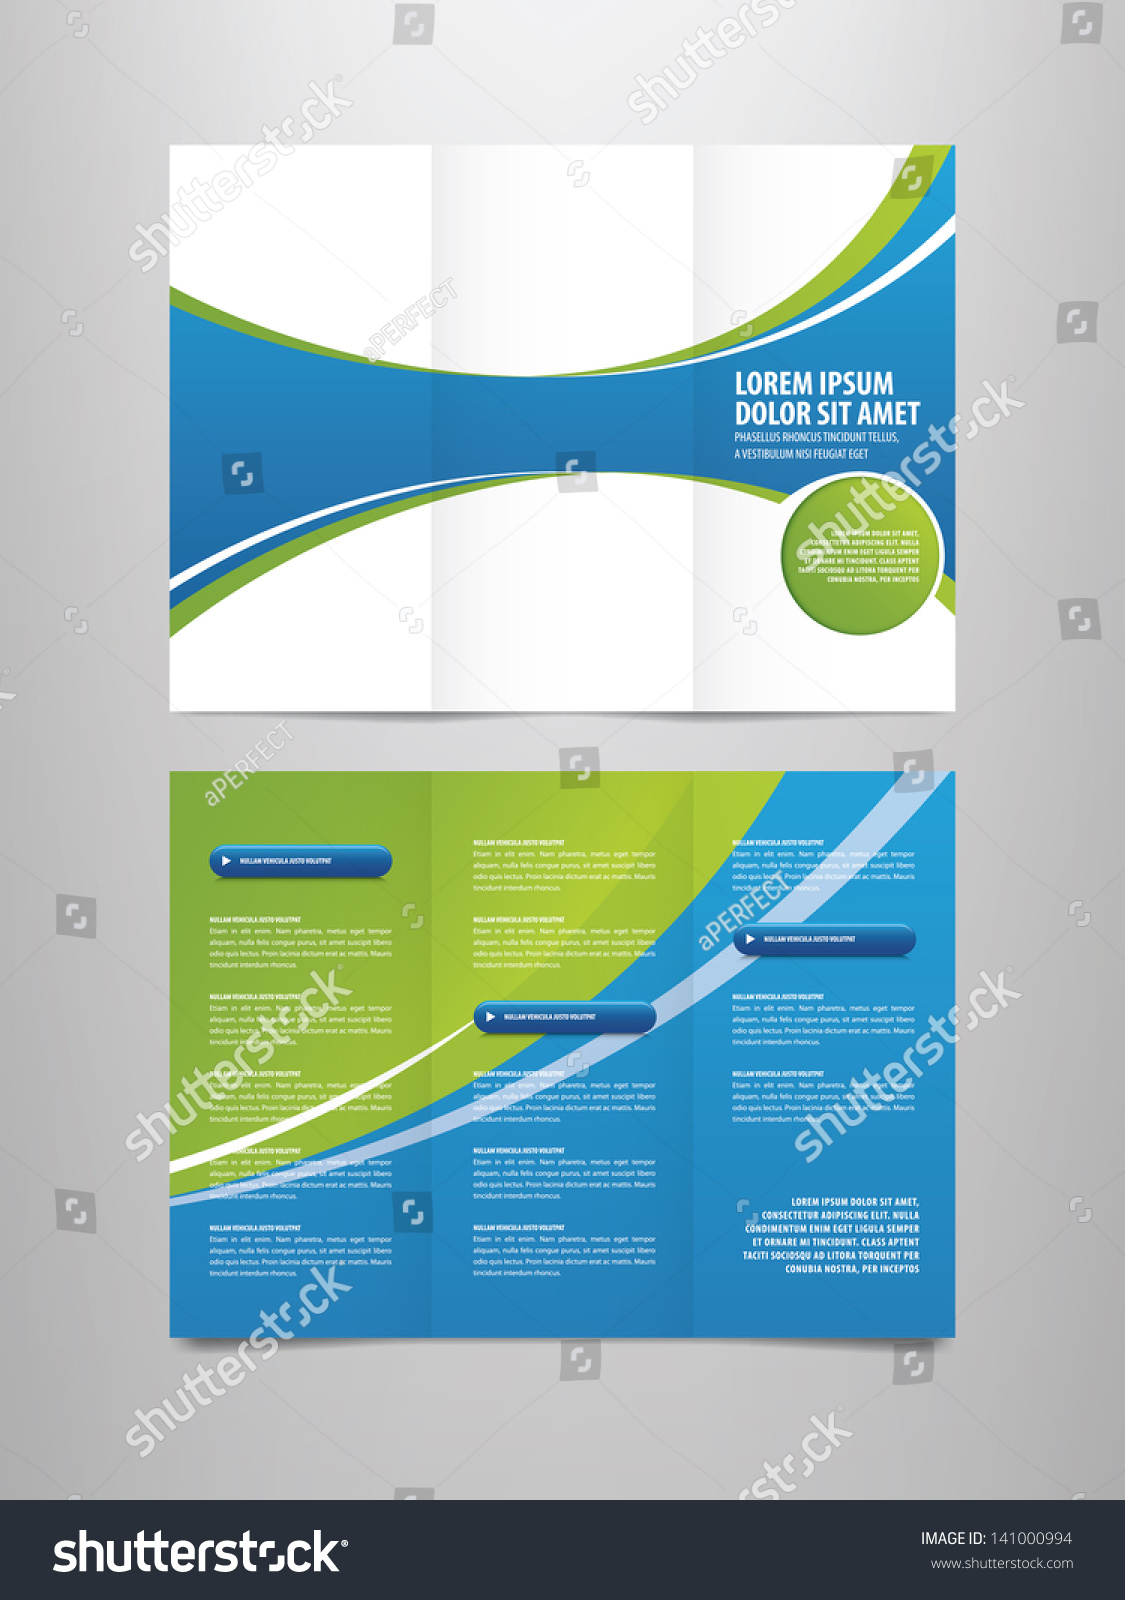 Tri fold business brochure template stock vector 141000994 for Tri fold business brochure template